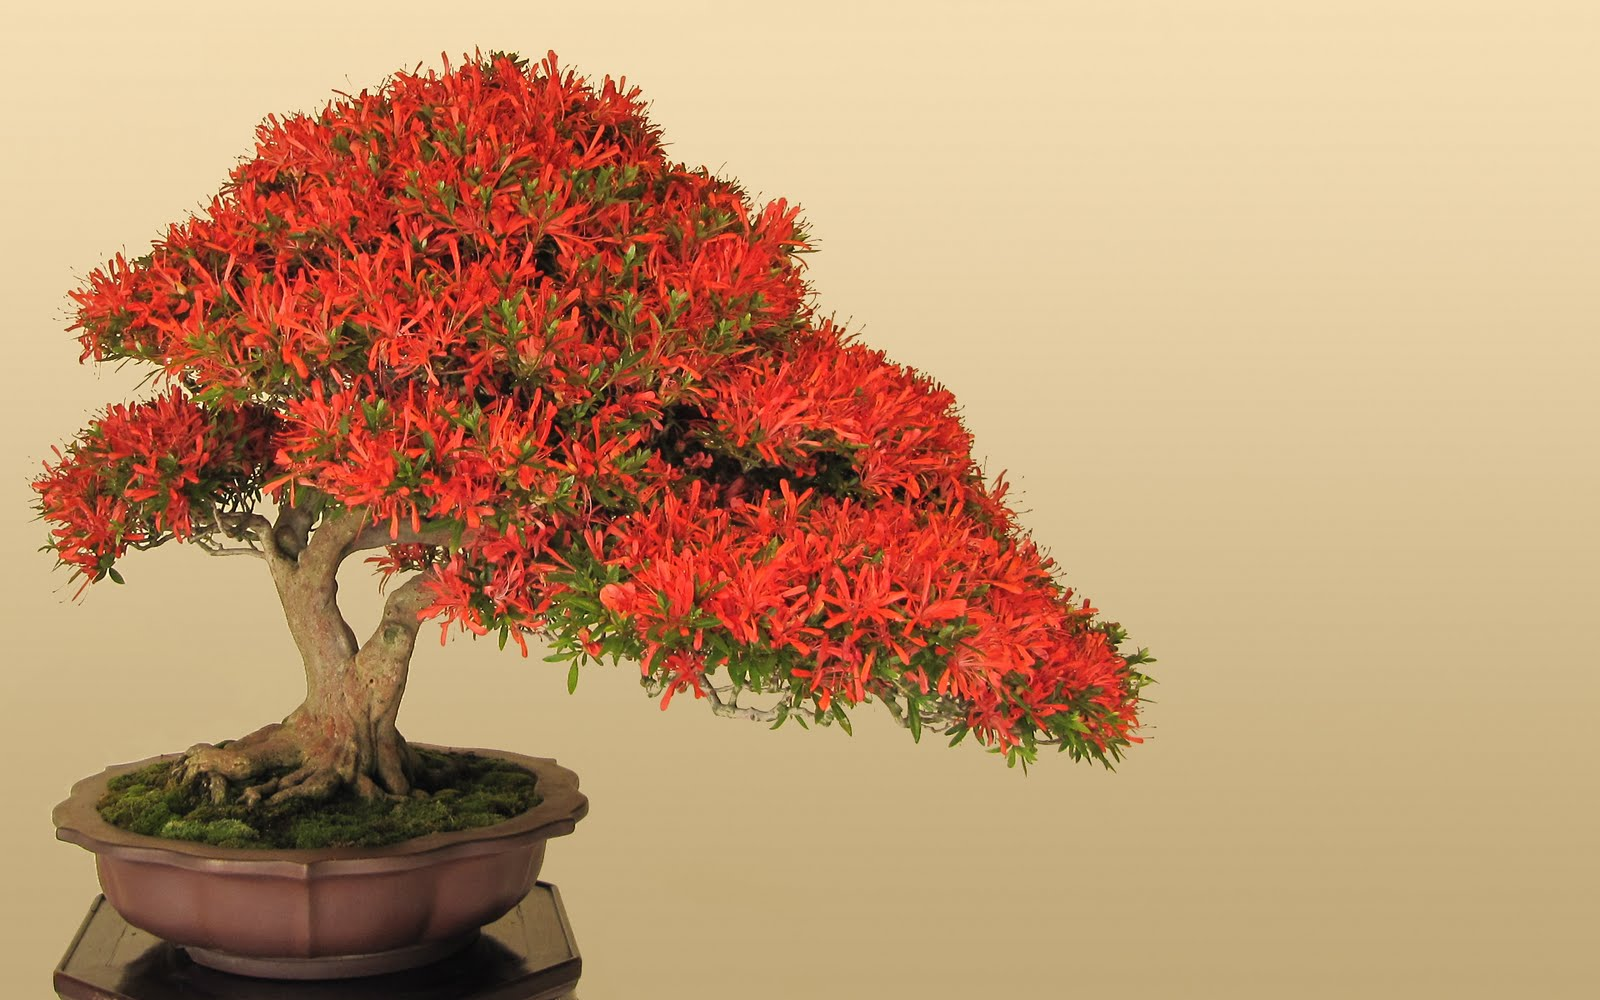 http://4.bp.blogspot.com/-1ZTrIiUCyHQ/TiF2lq84kUI/AAAAAAAACL4/QDUi8Nrsuo8/s1600/bonsai_japan_tree_art_wallpaper_3.jpg